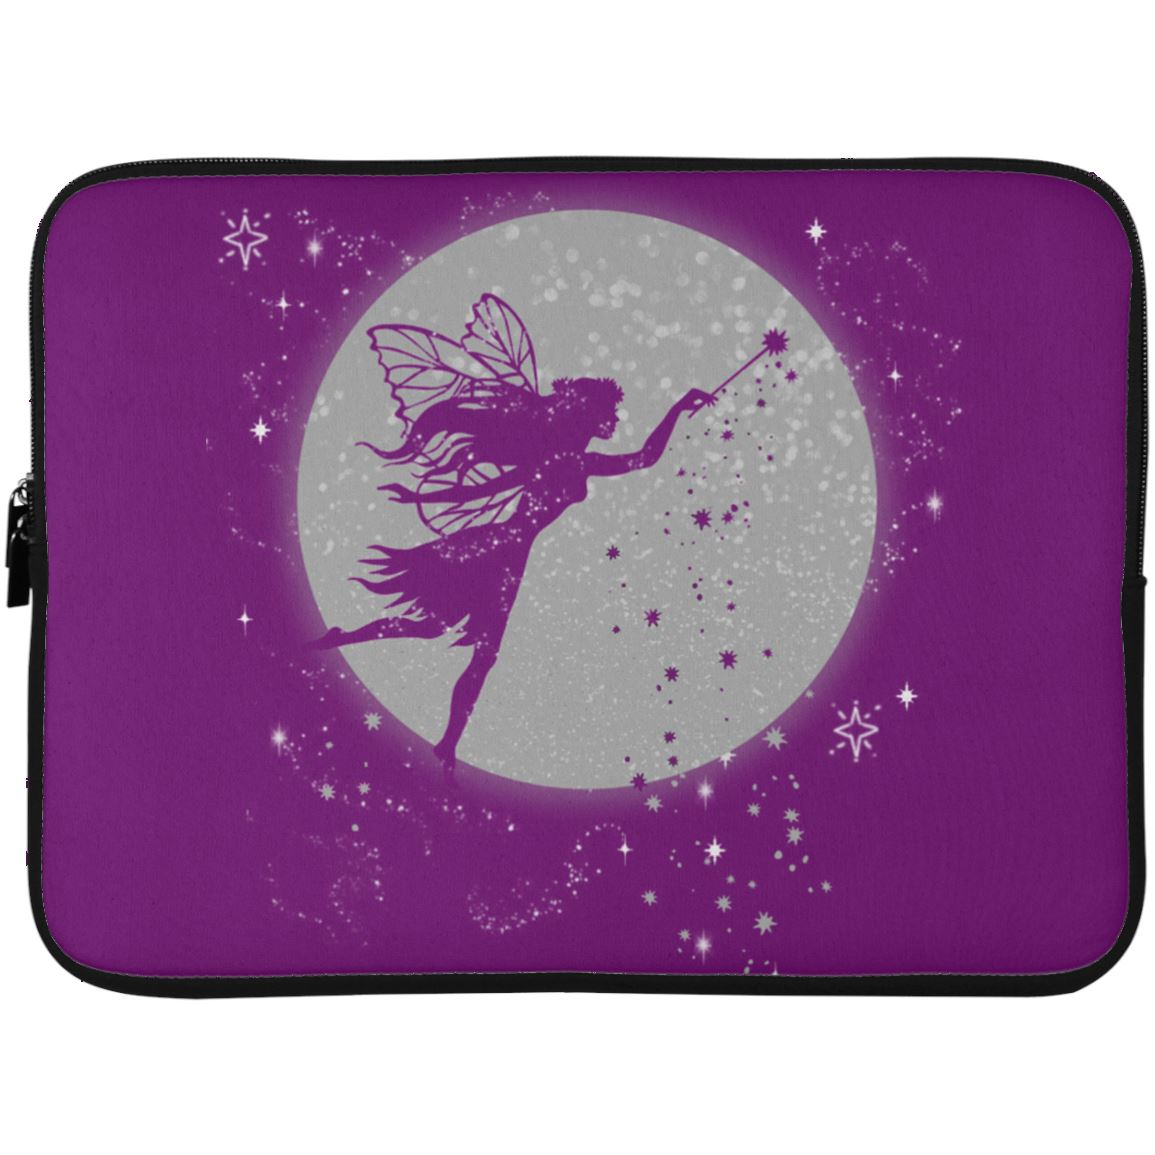 Fairy Moon Laptop Sleeve Apparel Laptop Sleeve - 15 Inch Purple One Size